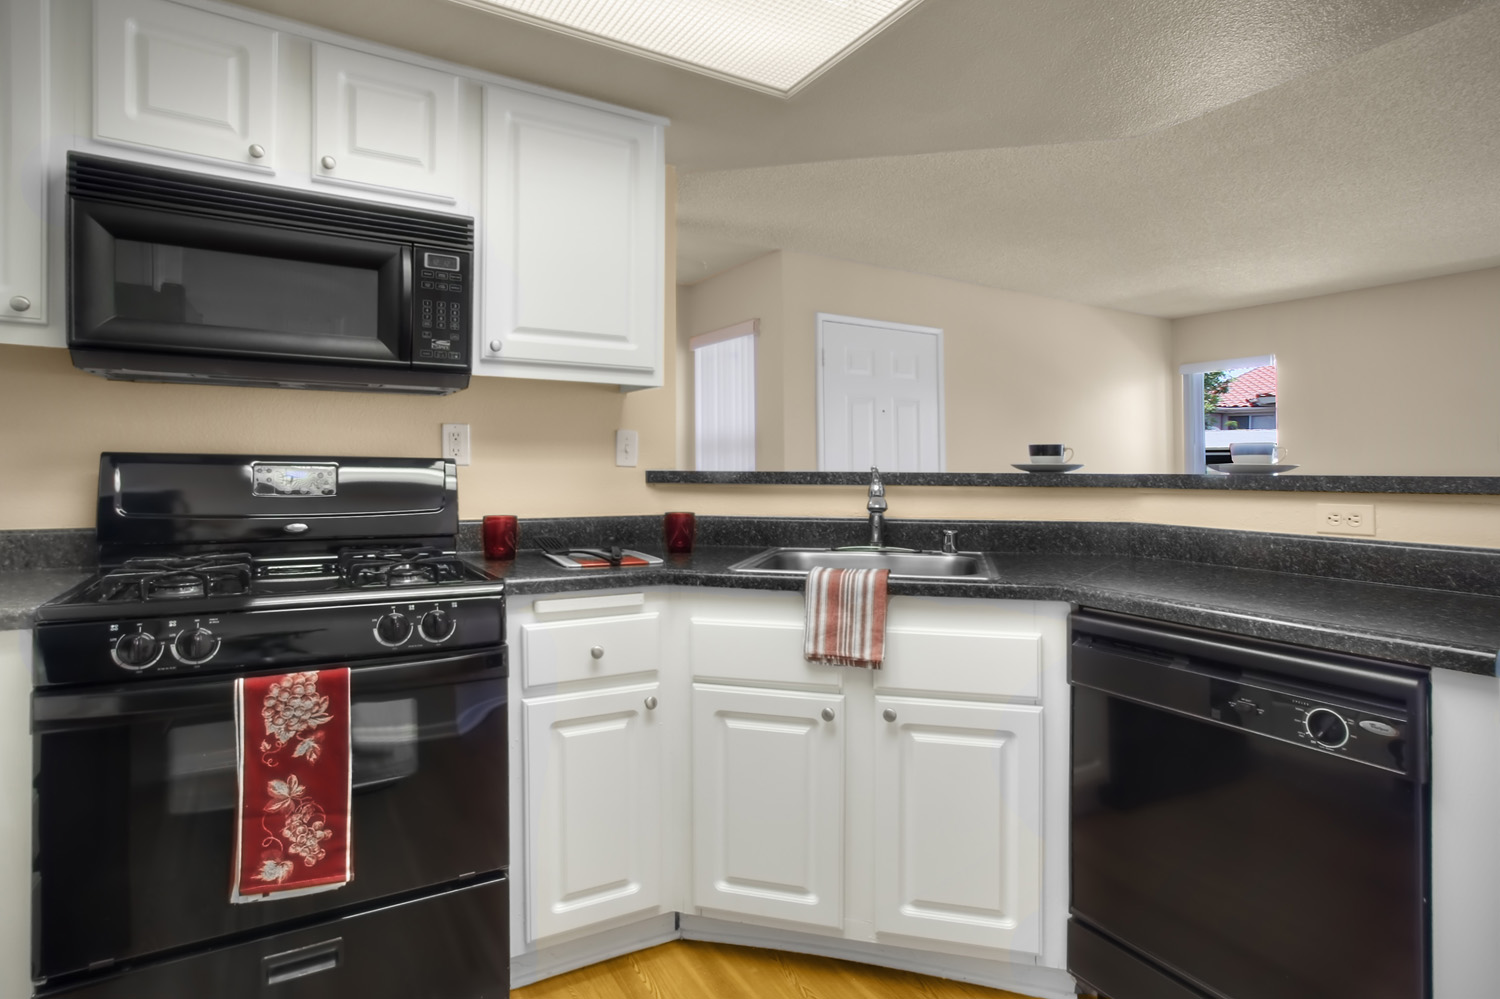 1B/1Ba Apartment Lease Takeover   Flip